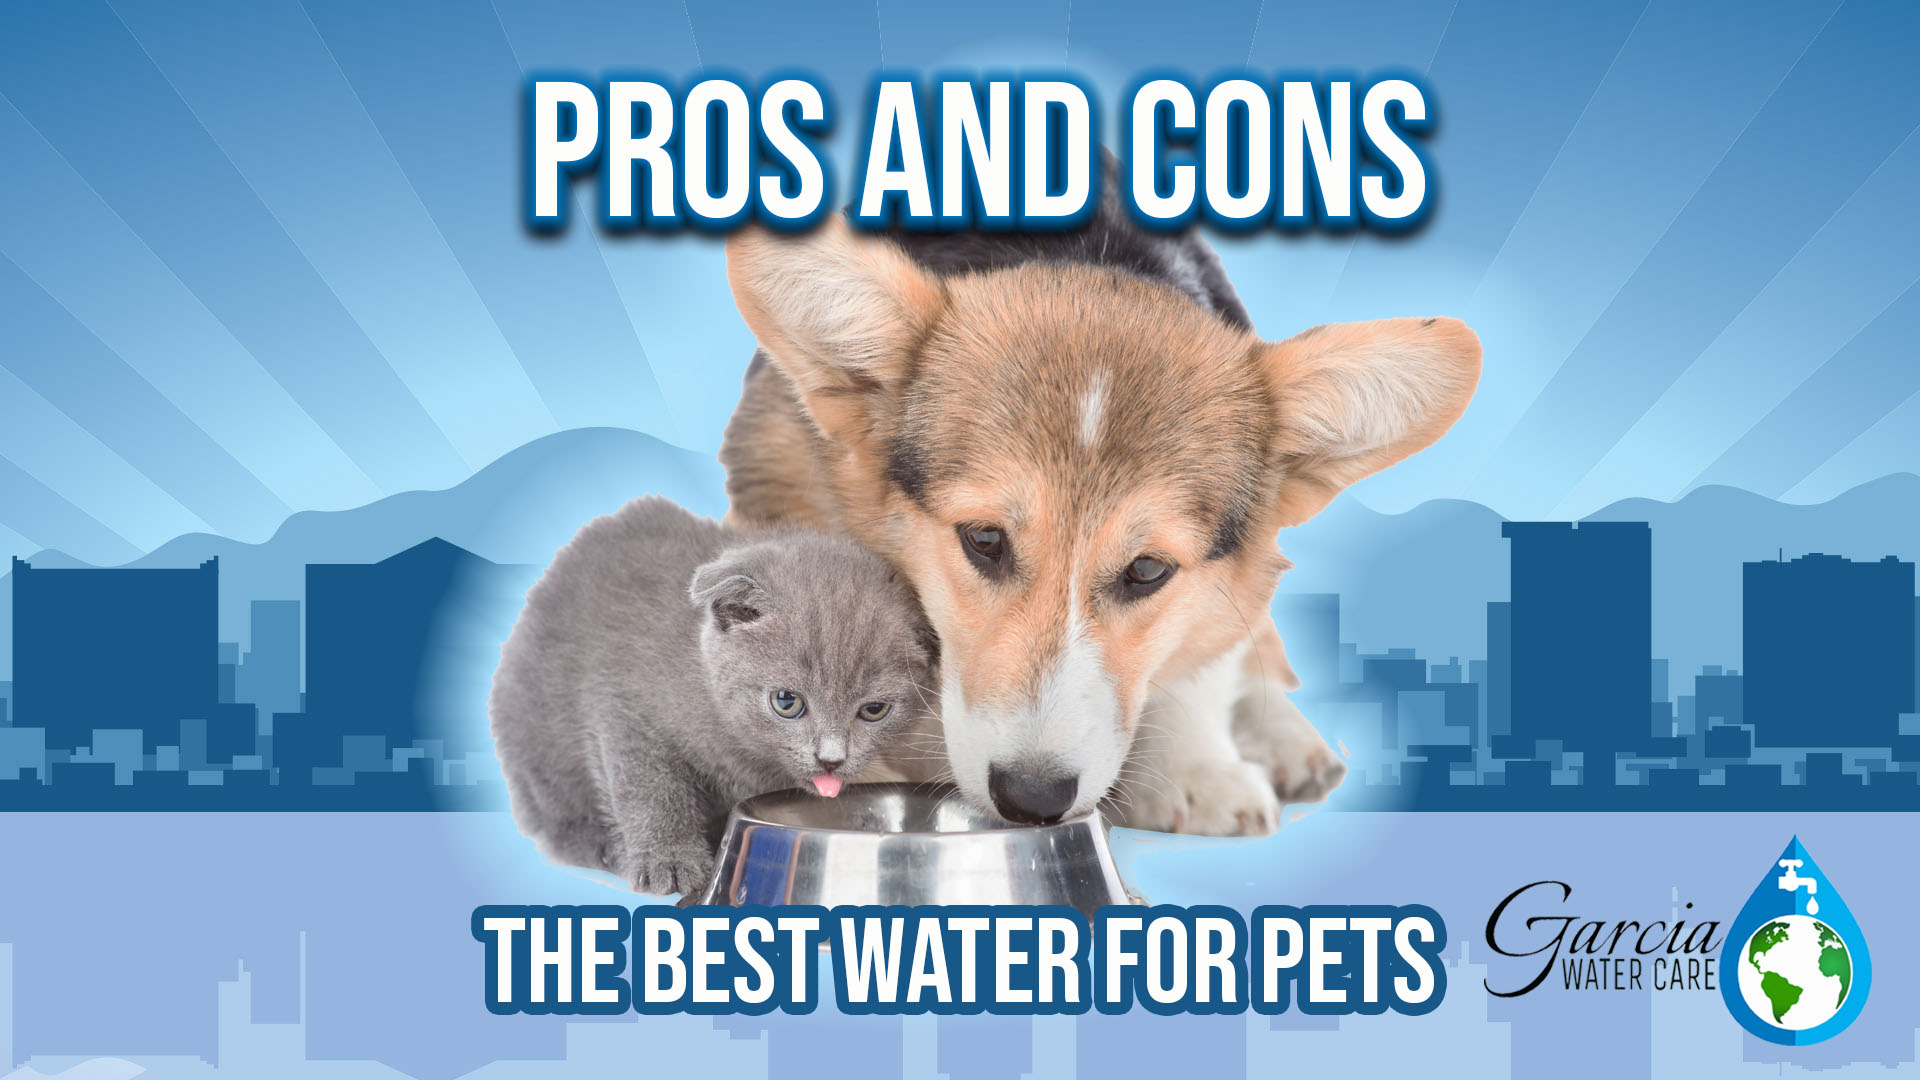 Pros and cons of giving your pets various drinking sources for their water